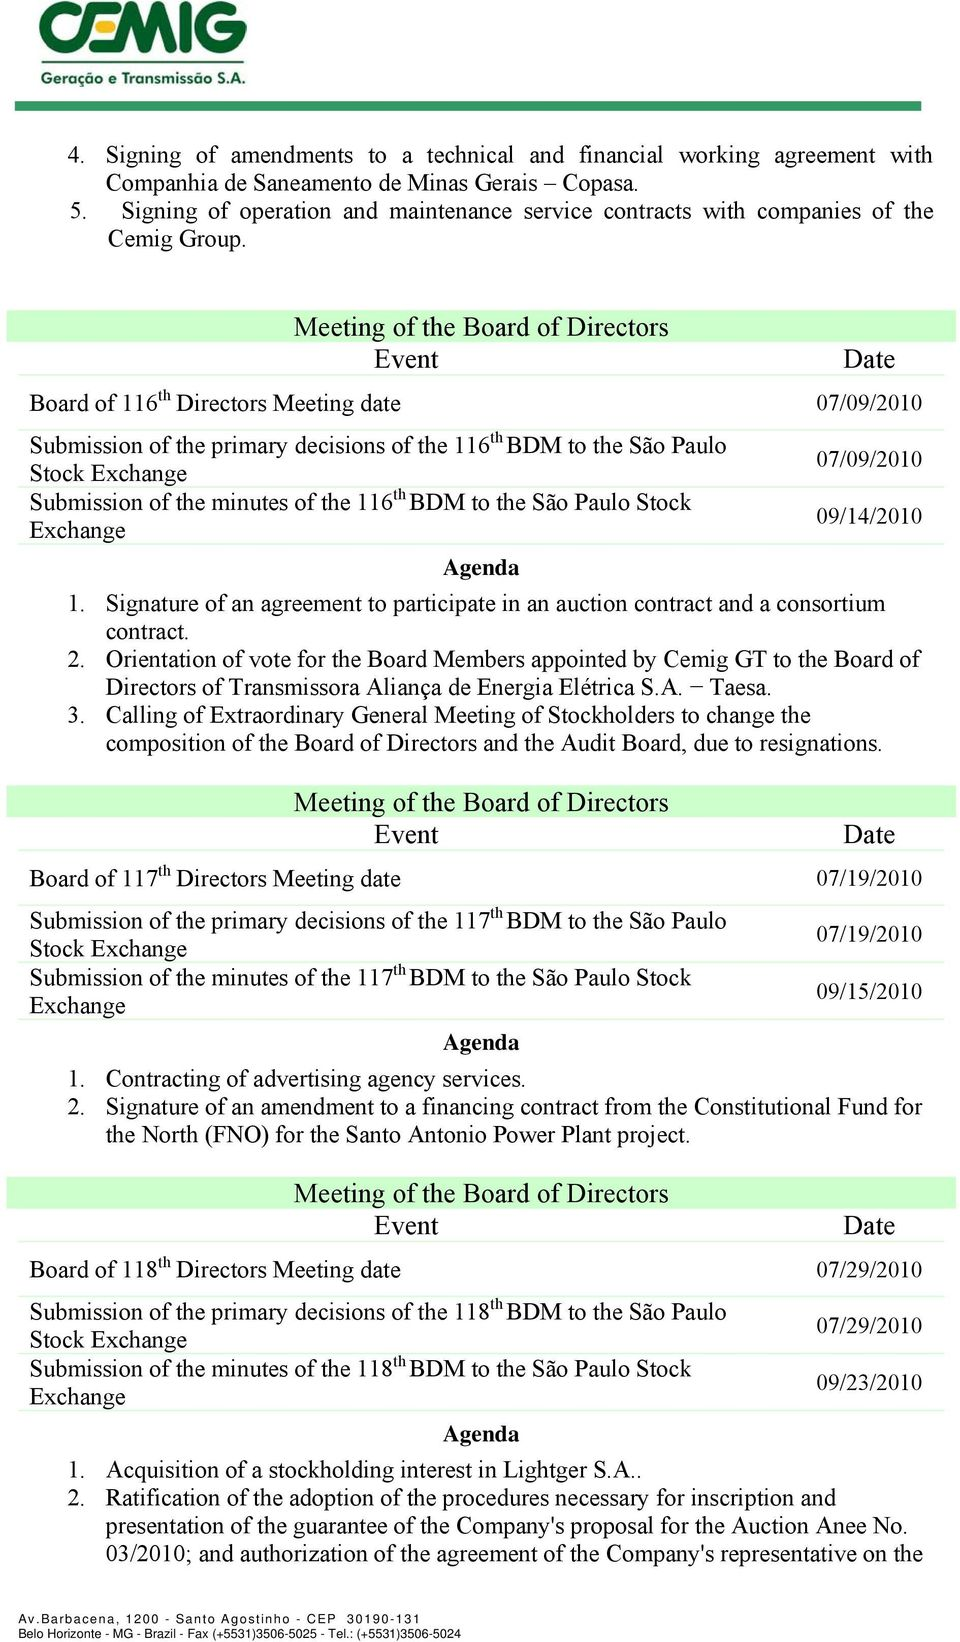 Board of 116 th Directors Meeting date 07/09/2010 Submission of the primary decisions of the 116 th BDM to the São Paulo 07/09/2010 Stock Submission of the minutes of the 116 th BDM to the São Paulo